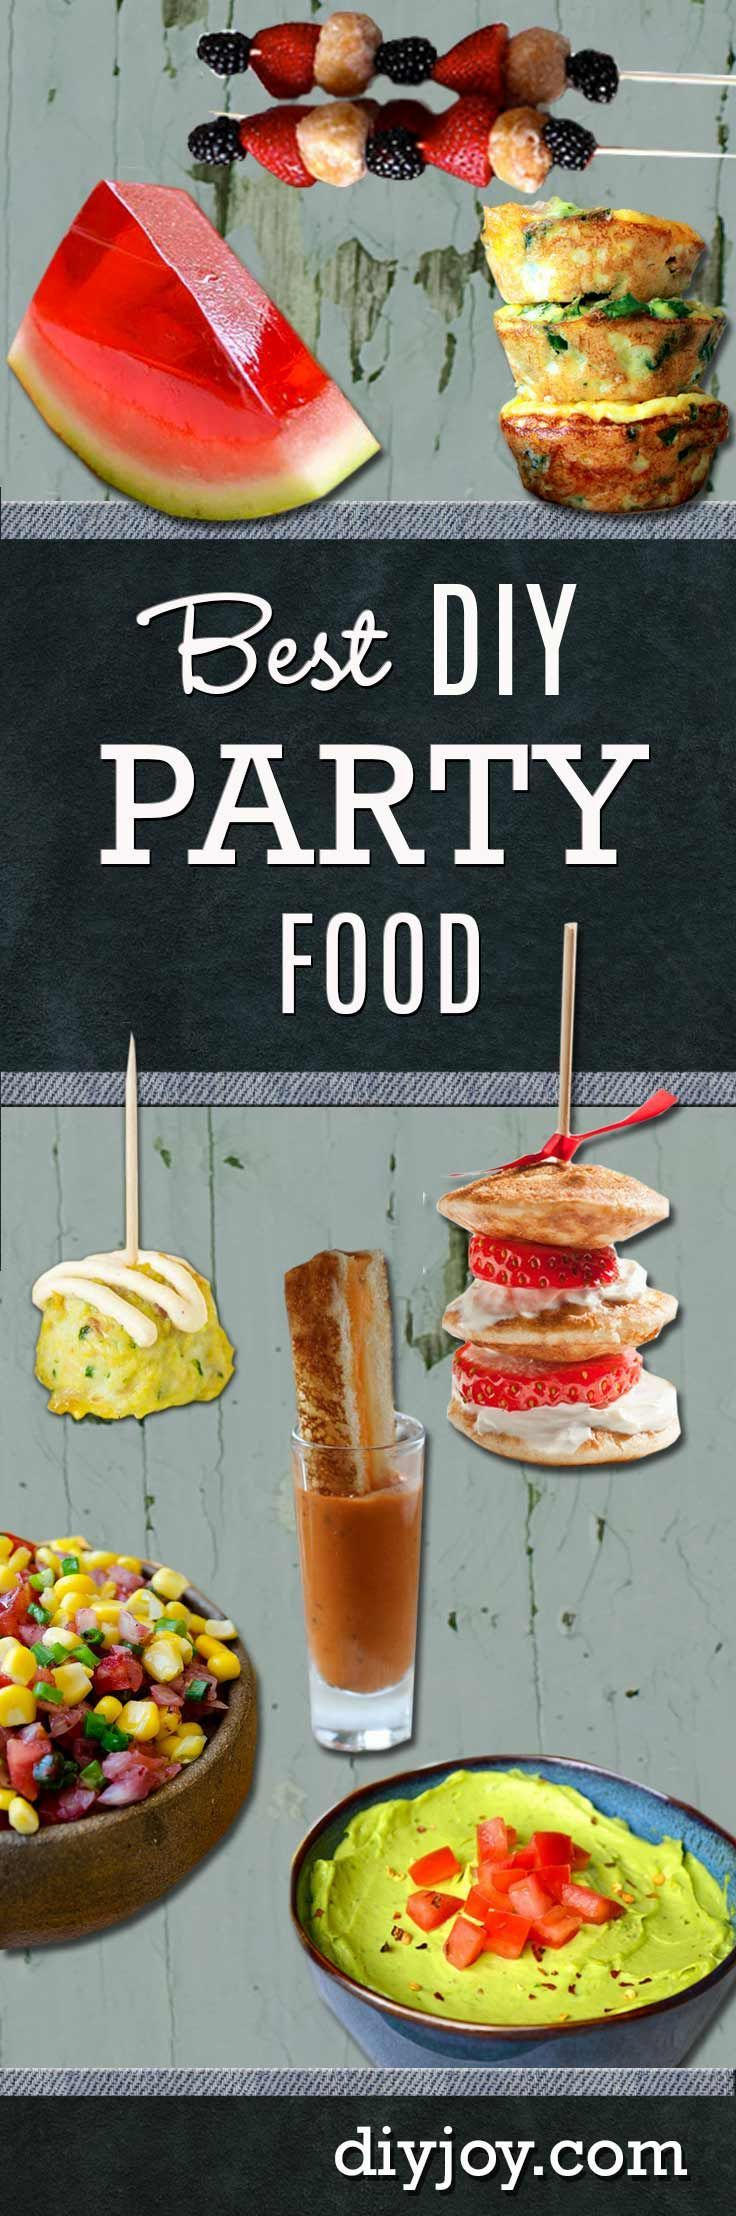 Best DIY party food ideas and recipes http://diyjoy.com/best-diy-party-food-ideas